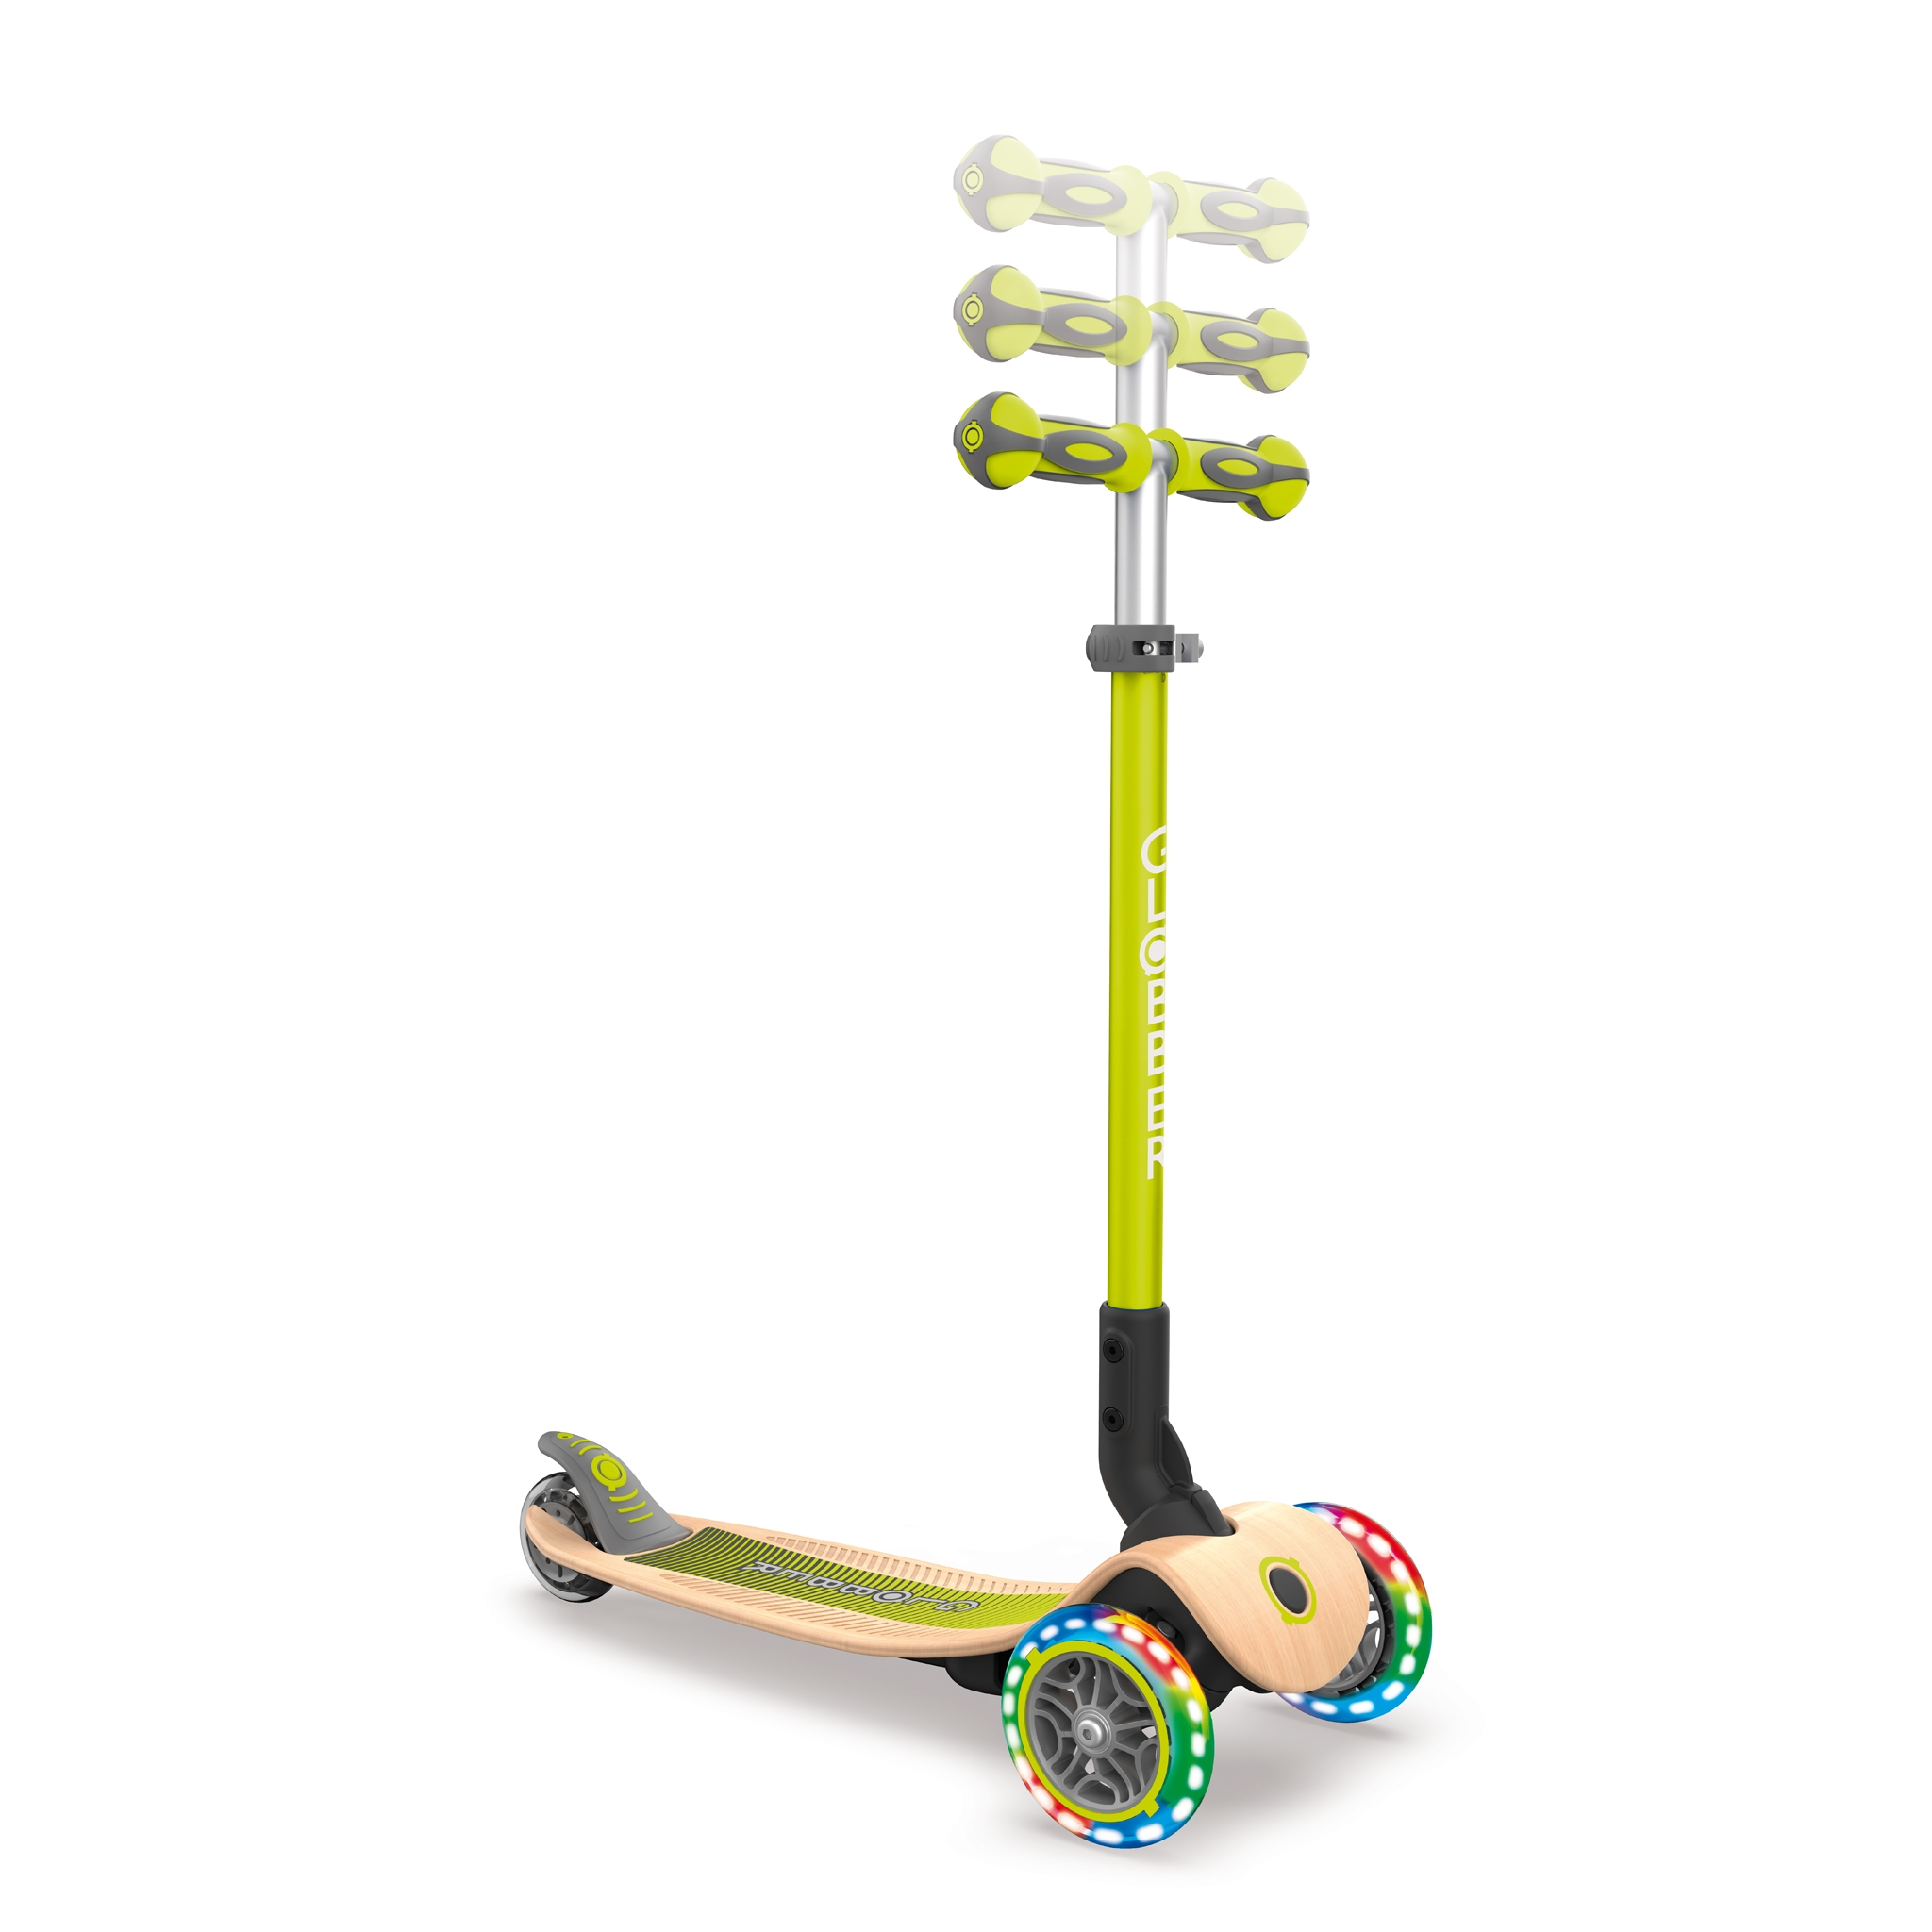 PRIMO-FOLDABLE-WOOD-LIGHTS-3-wheel-foldable-light-up-scooter-with-wooden-scooter-deck-and-3-height-adjustable-T-bar_lime-green